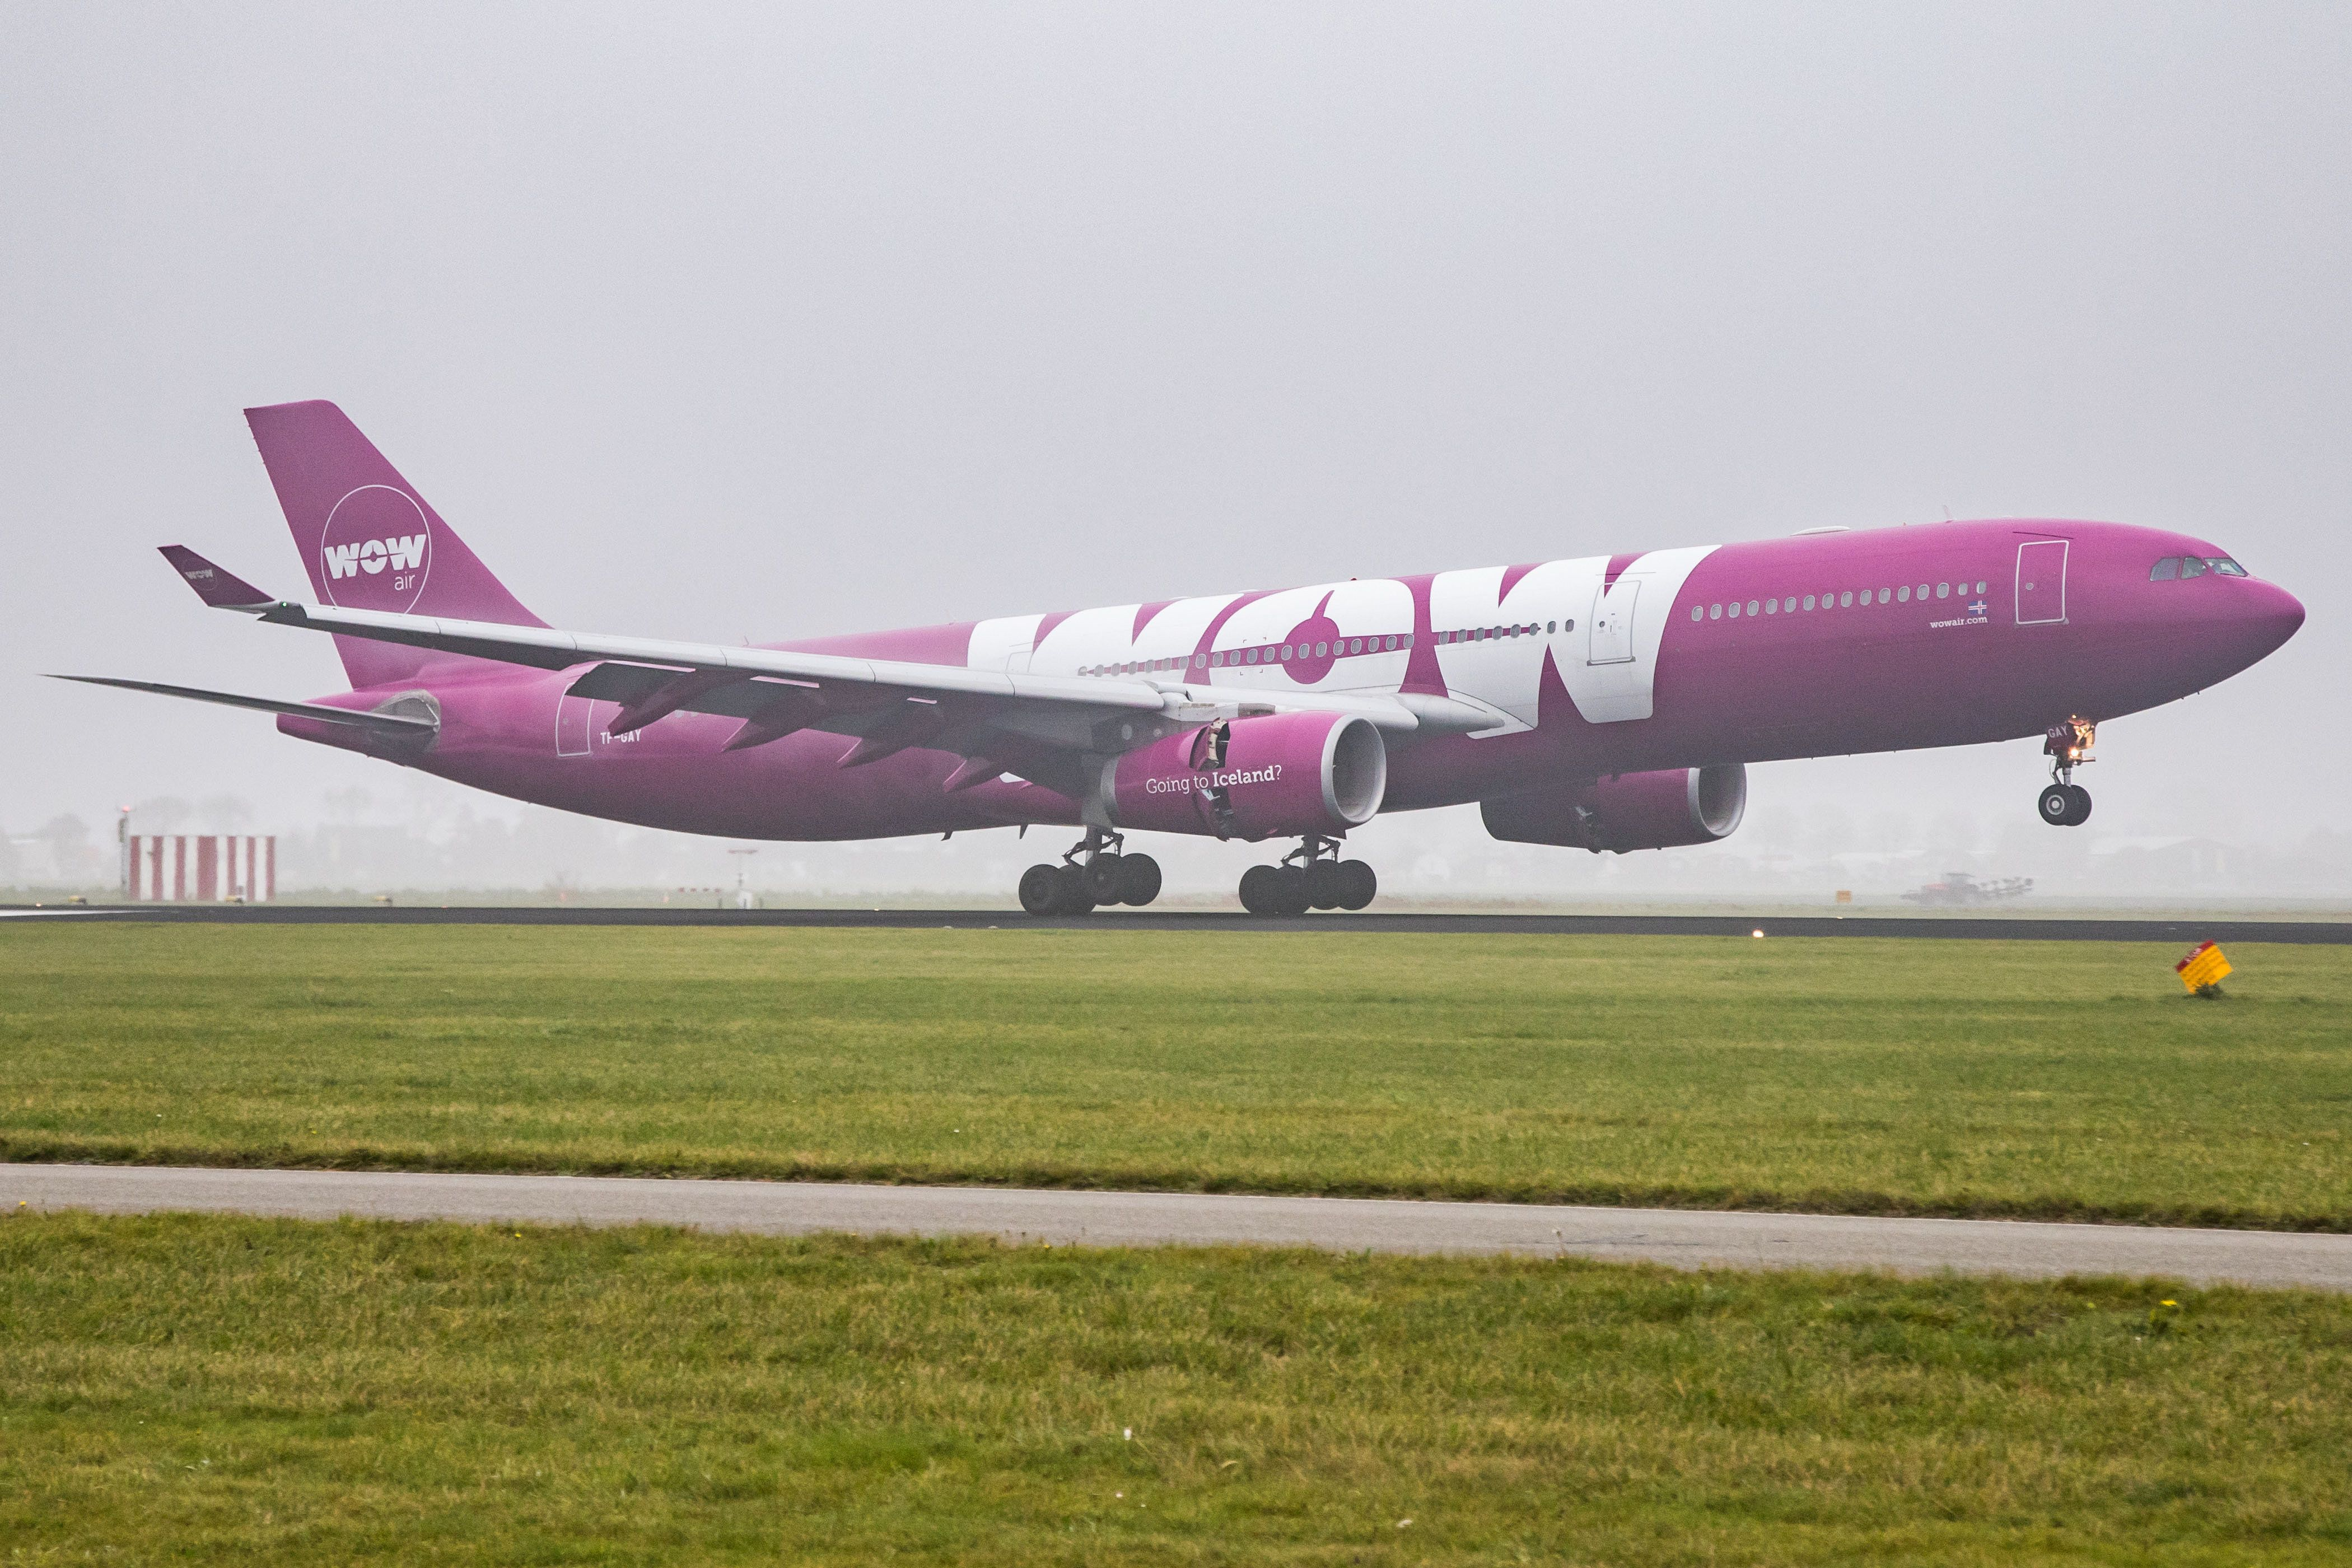 WOW air Airbus A330-343 with registration TF-GAY landing at Amsterdam Schiphol AMS / EHAM International Airport in the Netherlands. The airline connects Amsterdam to Reykjavík Keflavík Airport. The airline performs low cost transatlantic flights through Iceland. (Photo by Nicolas Economou/NurPhoto via Getty Images)